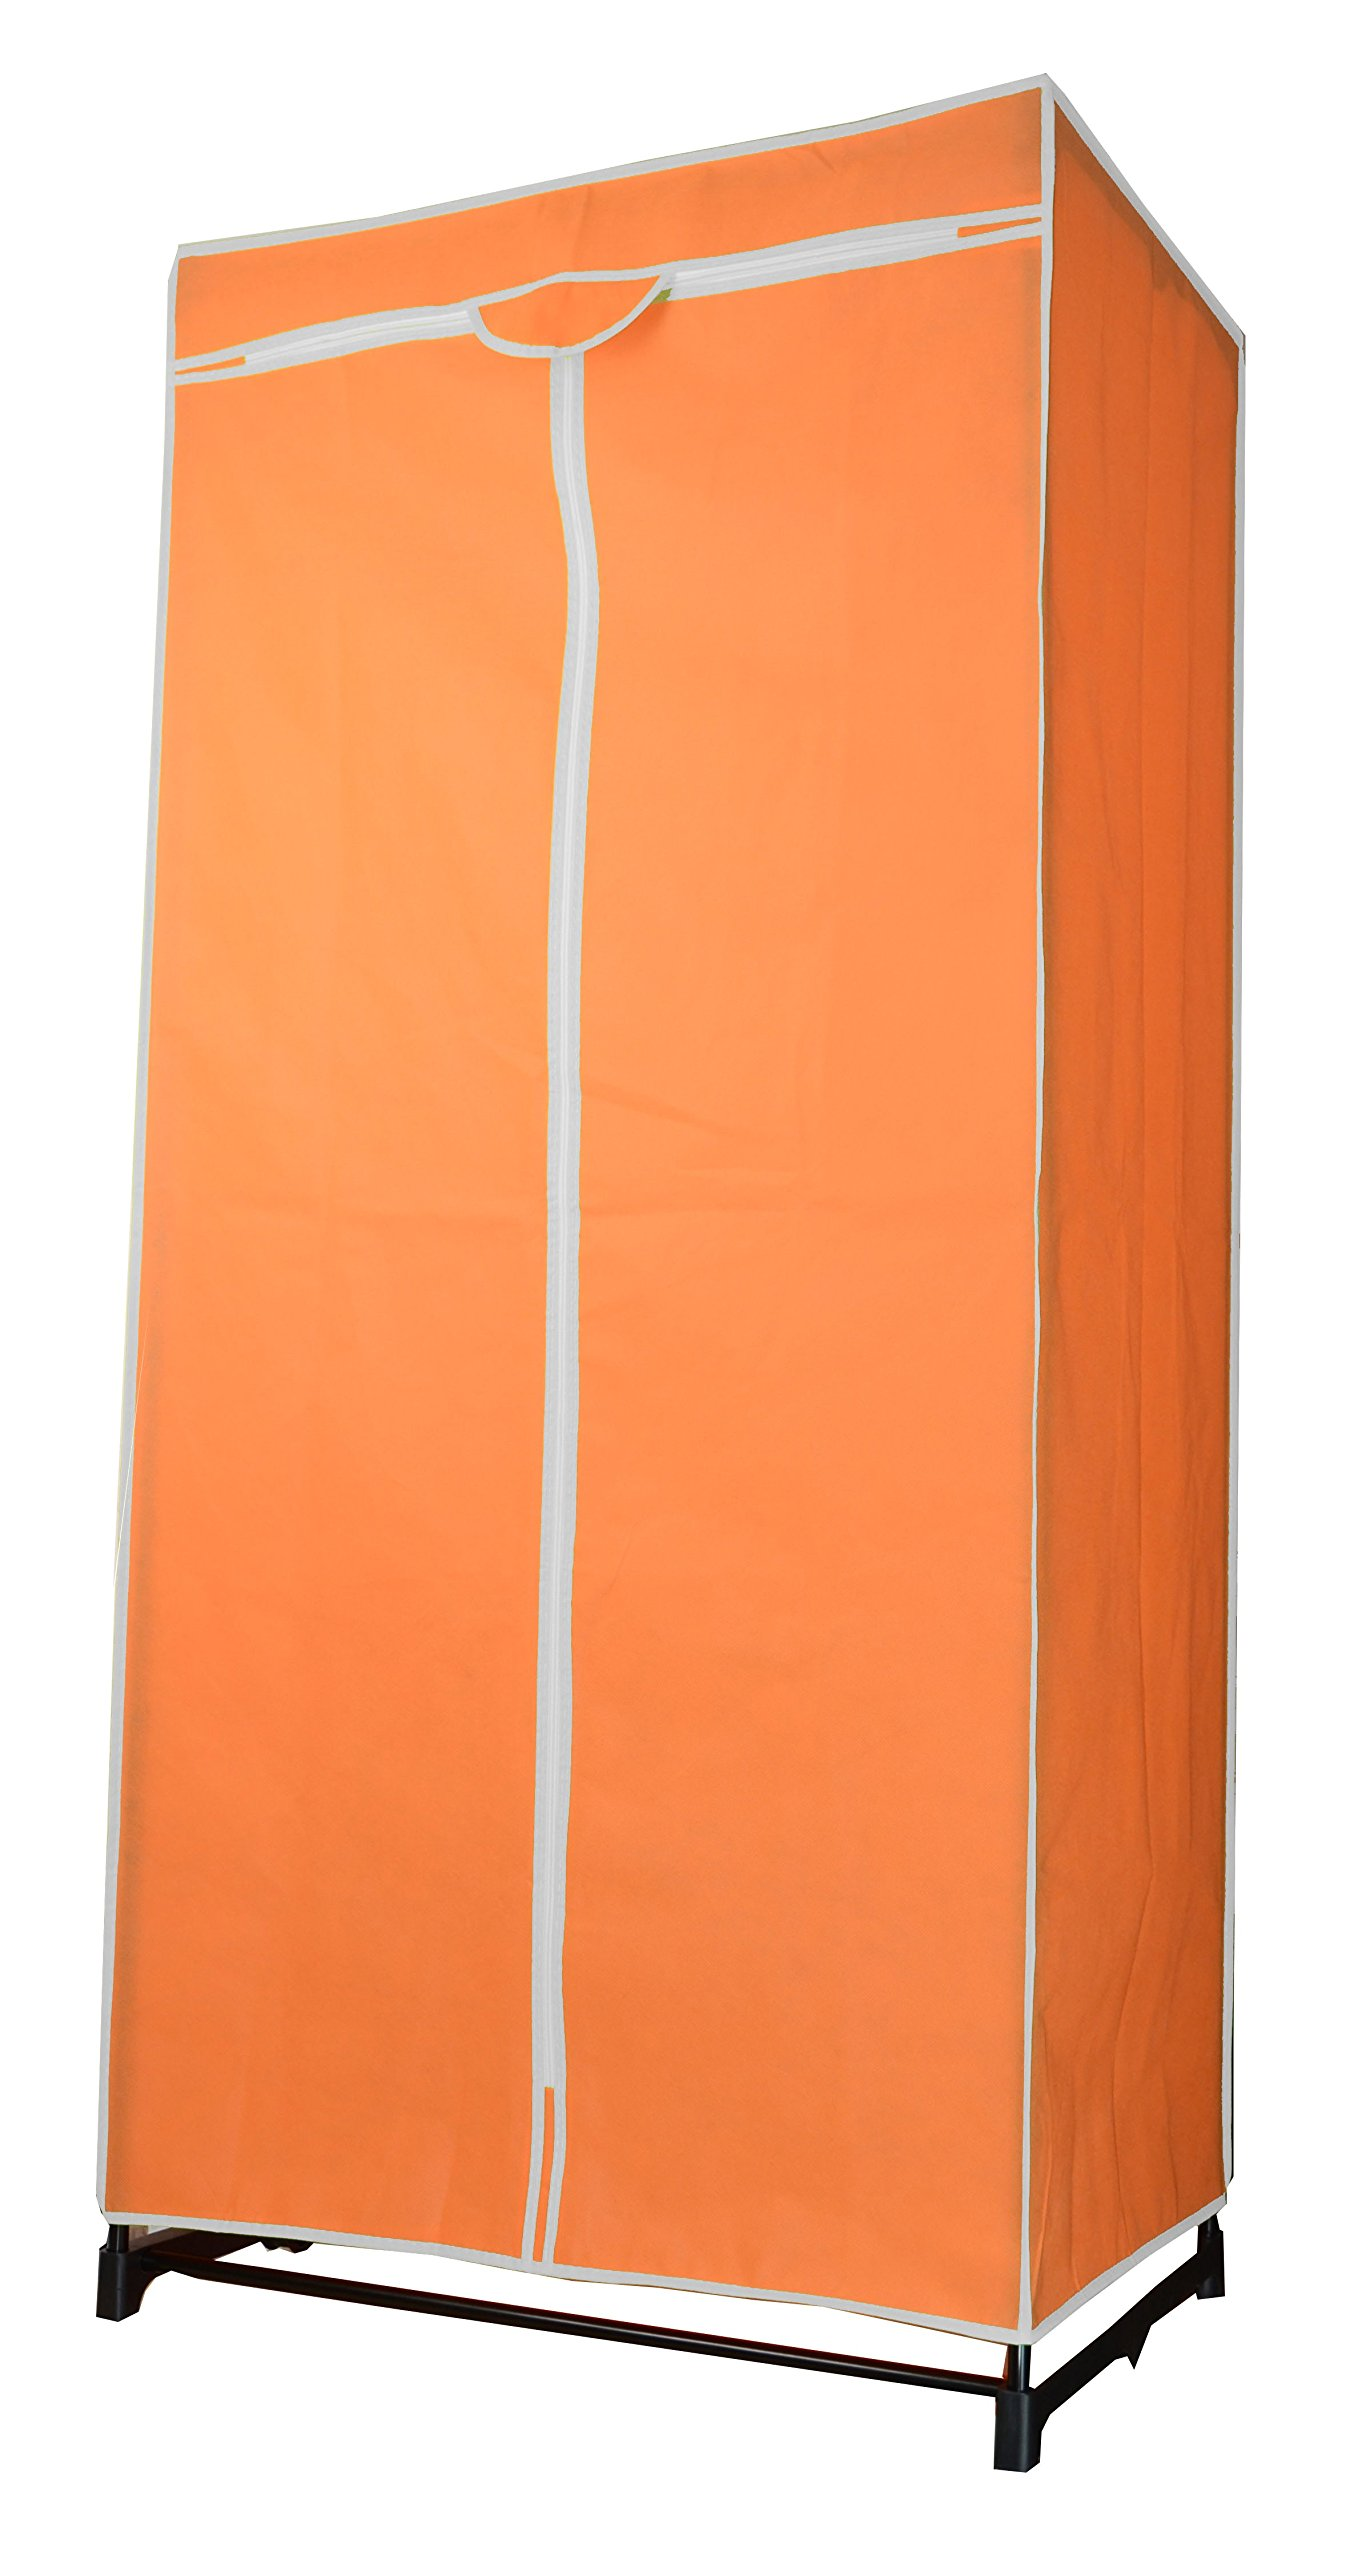 Rolan 5523 - Basic collapsing wardrobe (150 cm) by Rolan